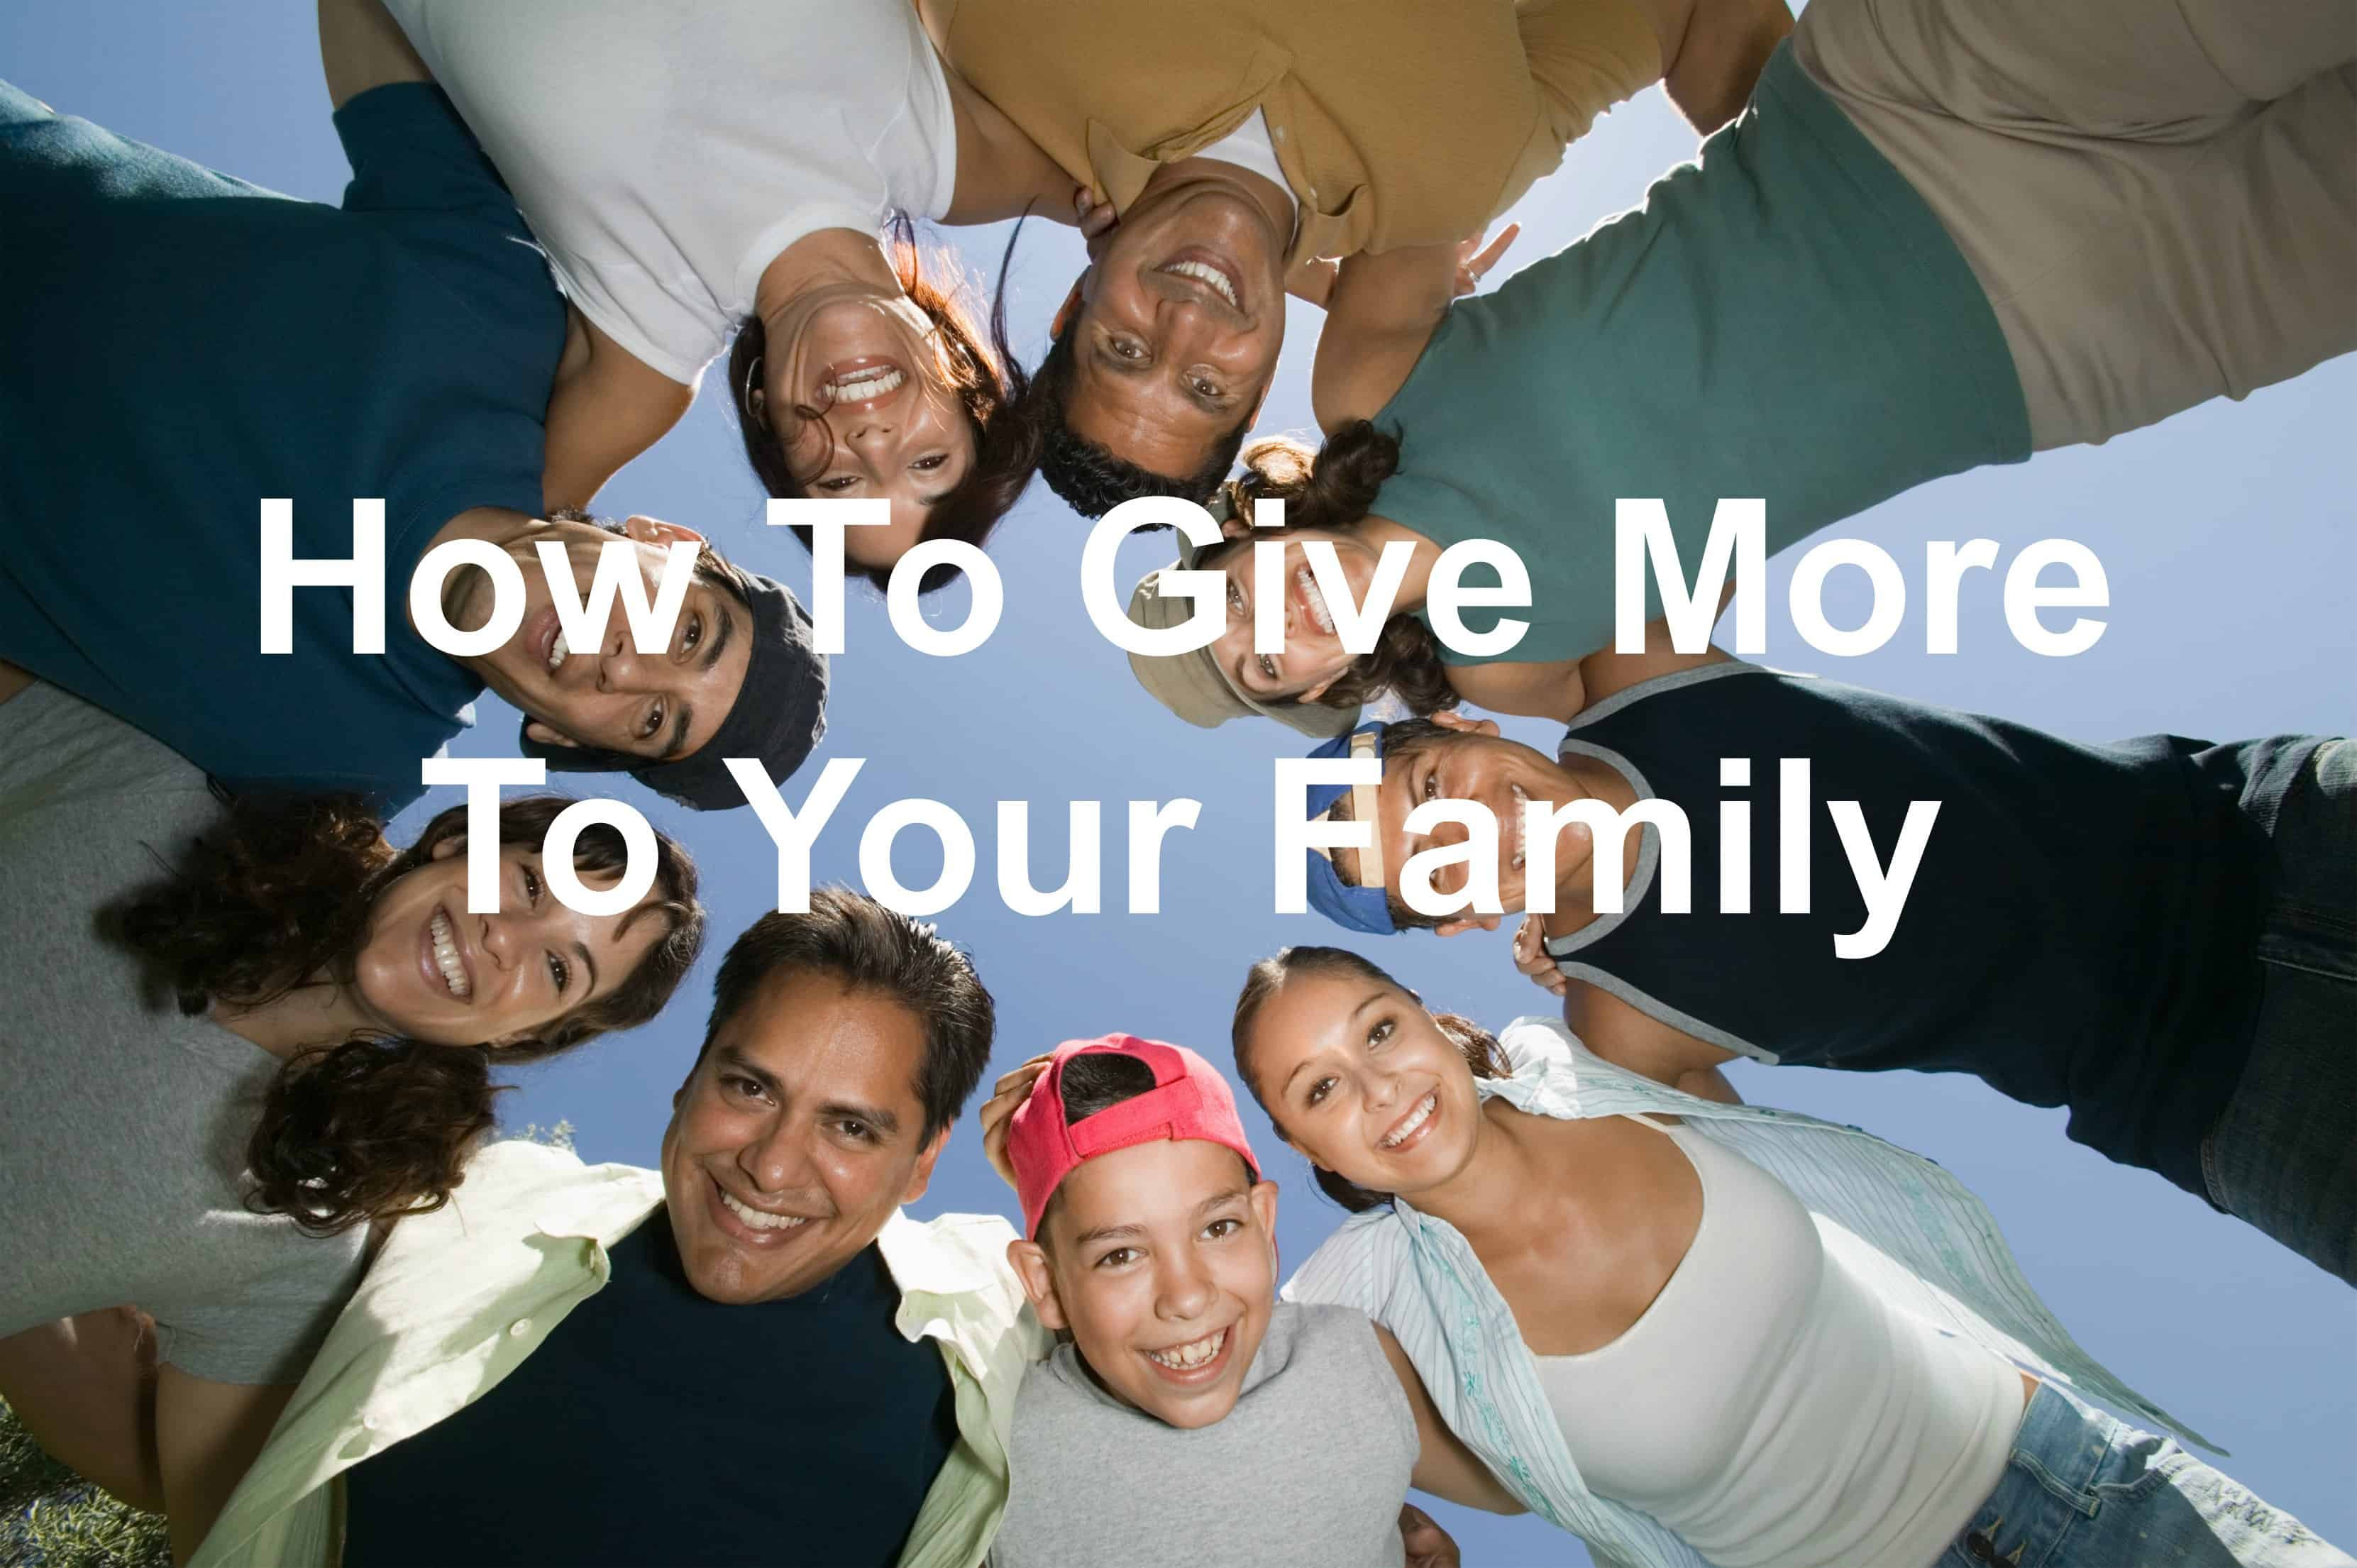 Your family deserves more. Give it to them